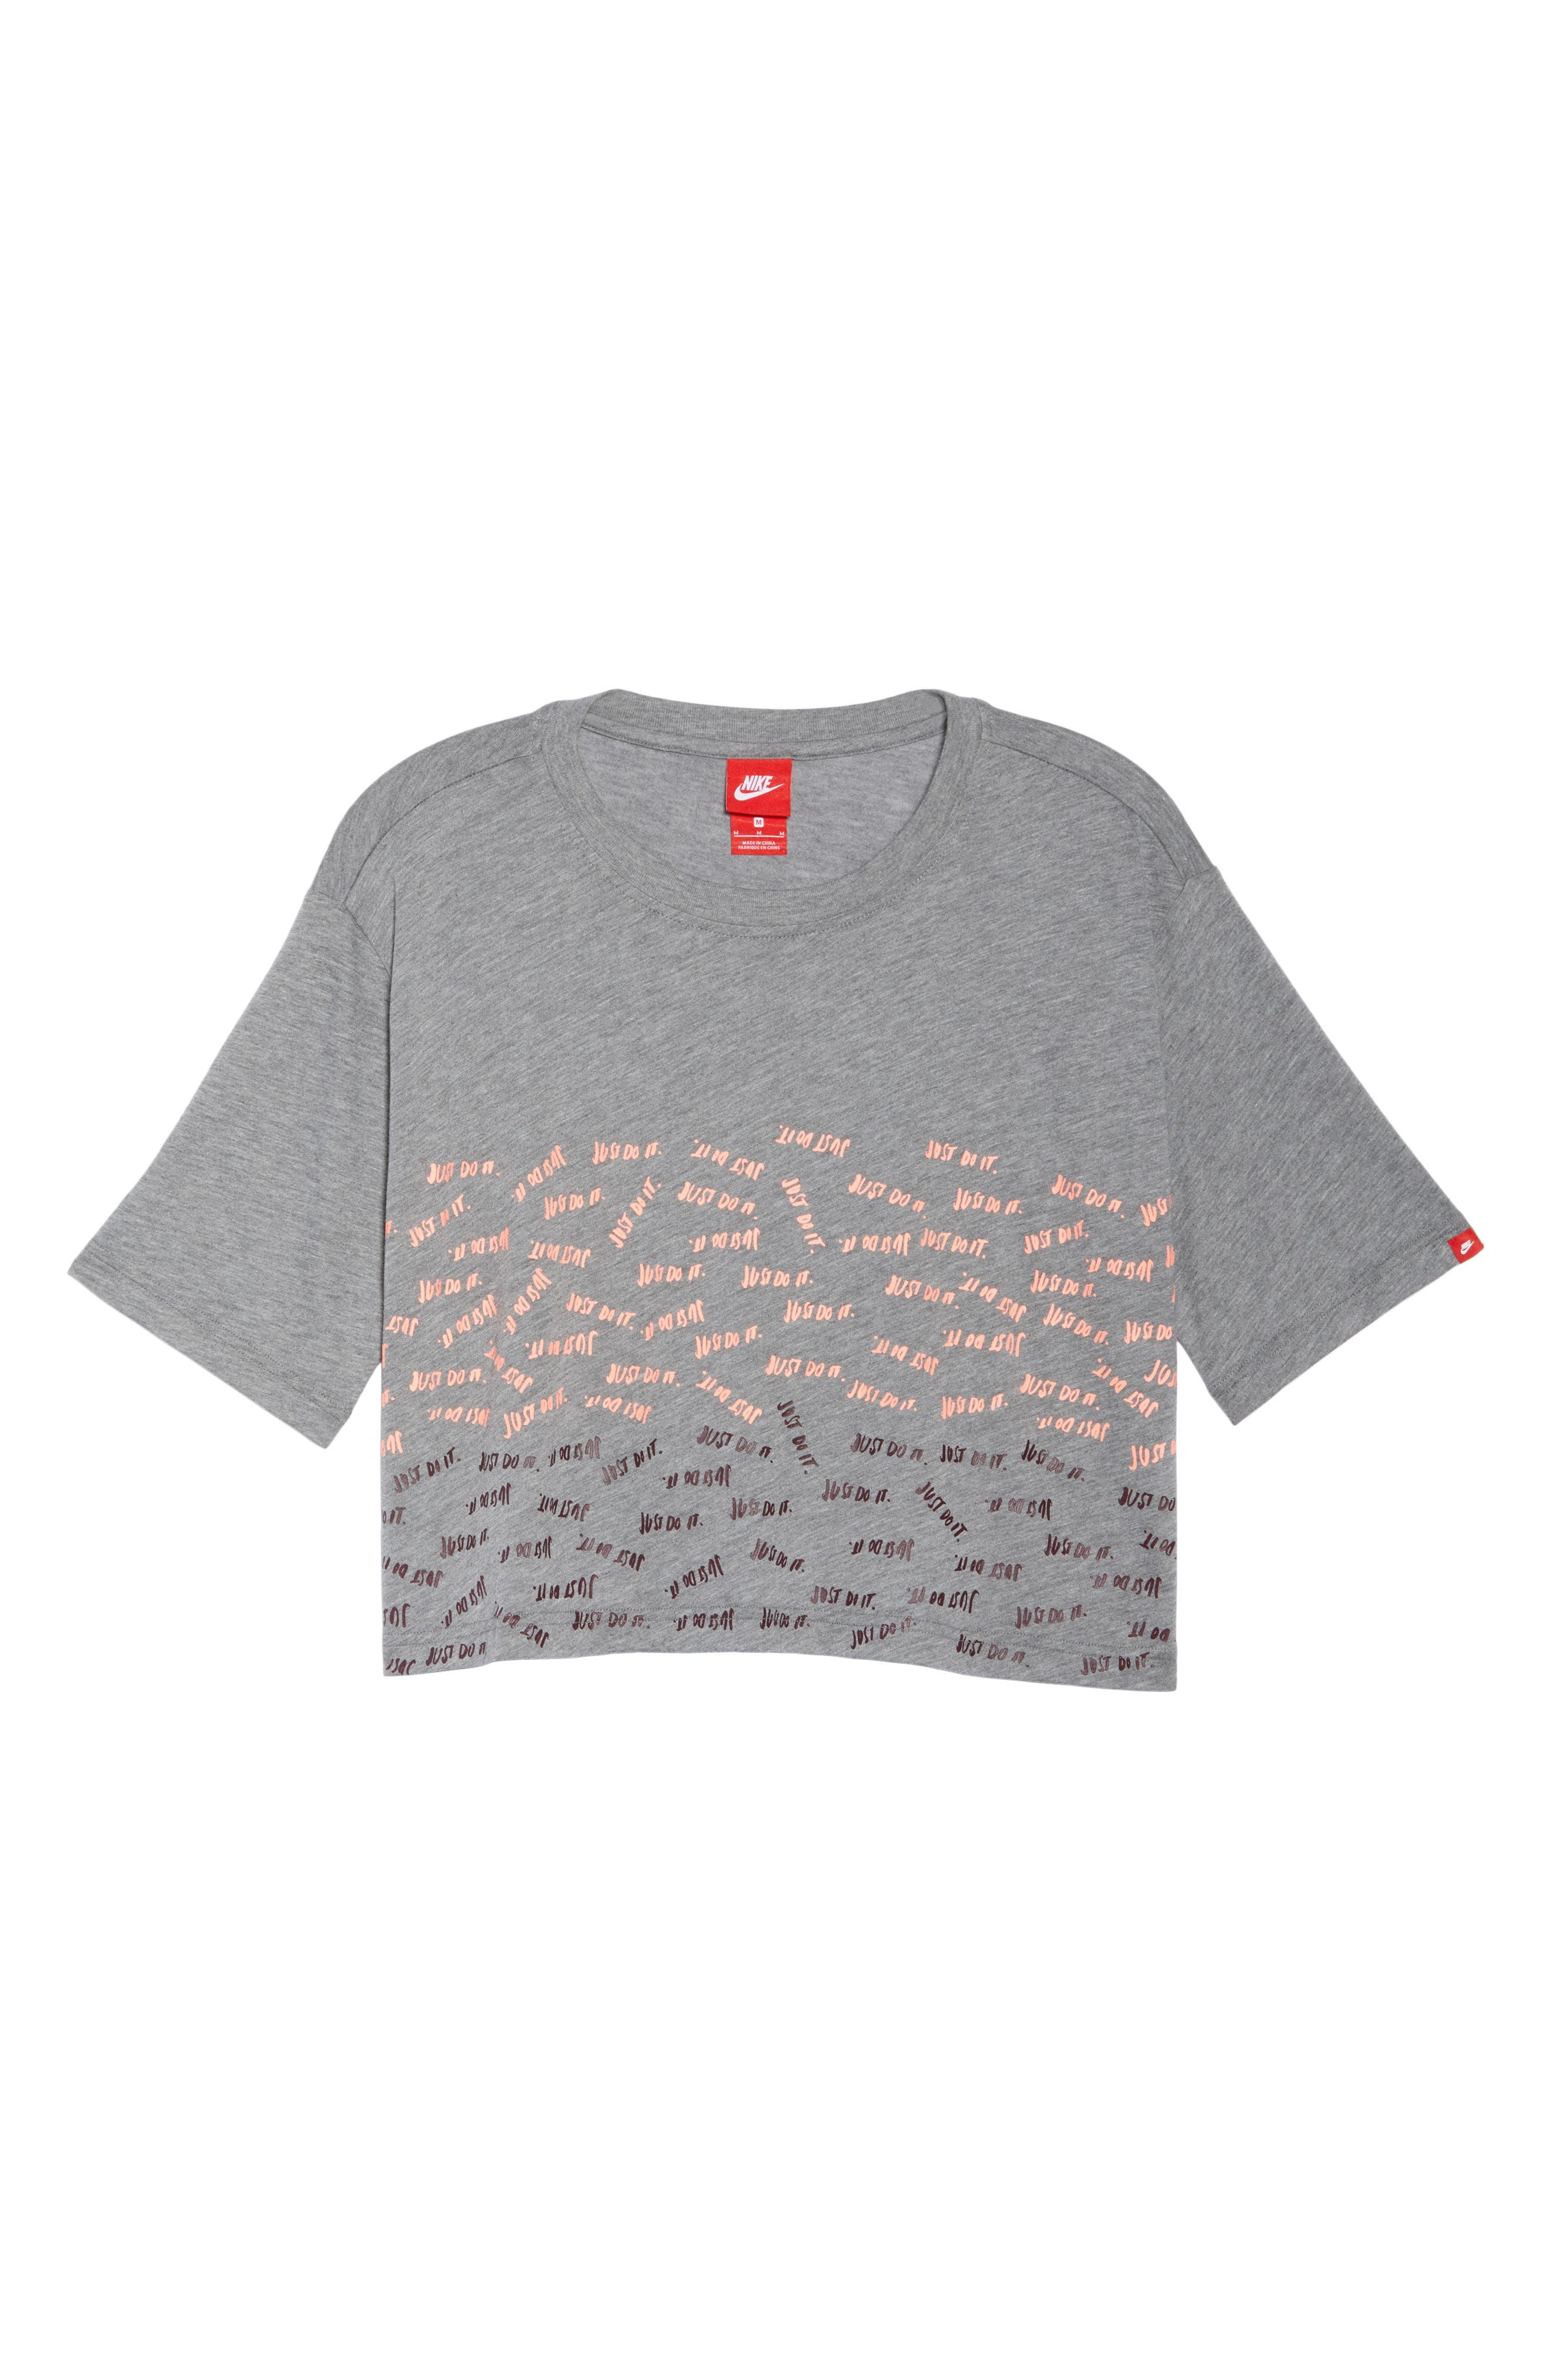 Sportswear Just Do It Tee,                             Alternate thumbnail 7, color,                             Carbon Heather